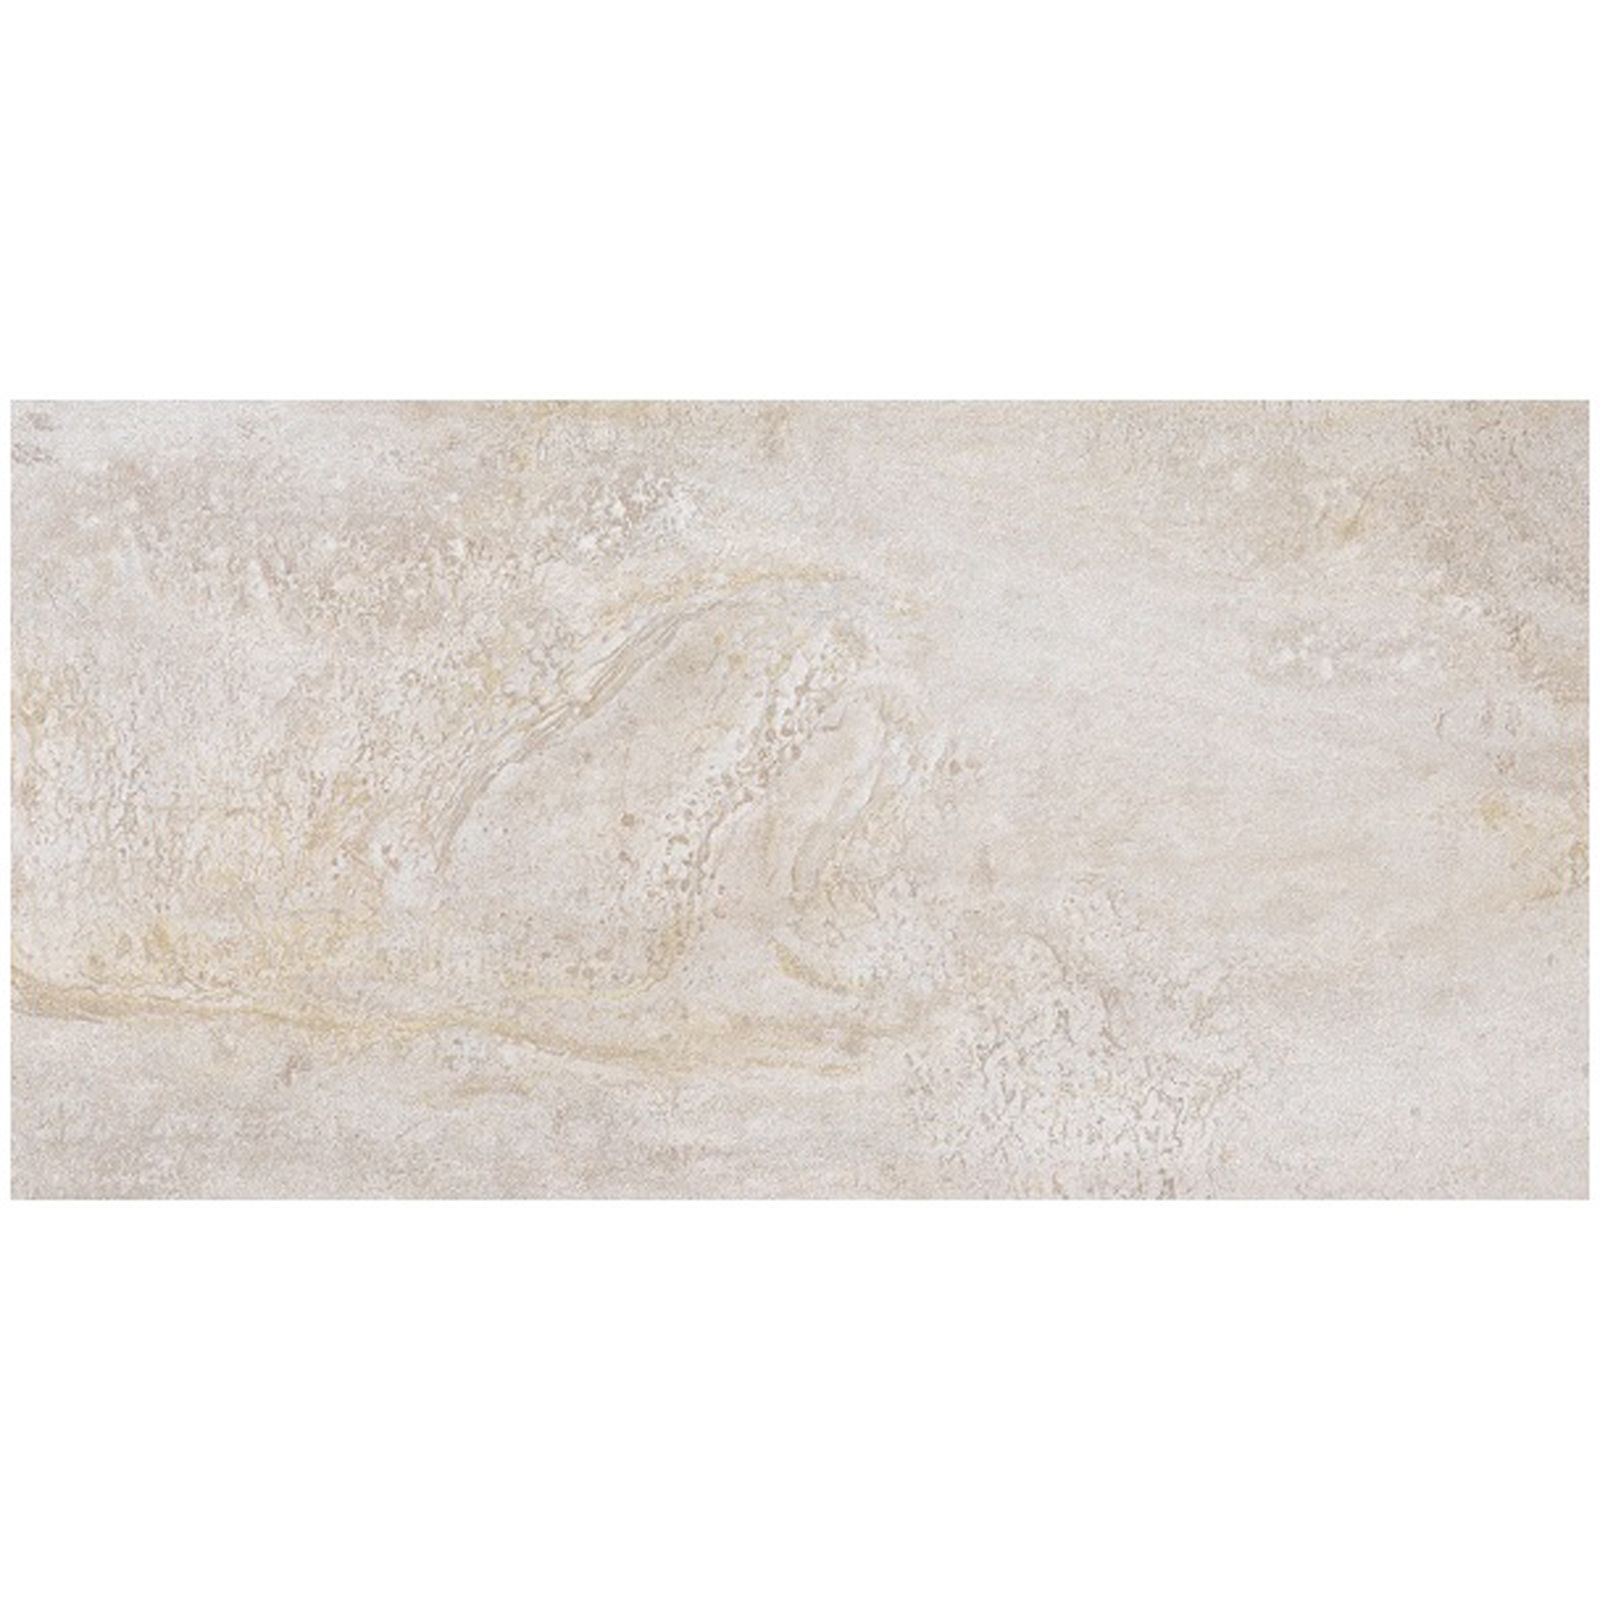 Find coulson 30 x 60cm concrete white niro porcelain floor tile 6 find coulson 30 x 60cm concrete white niro porcelain floor tile 6 pack at bunnings dailygadgetfo Gallery